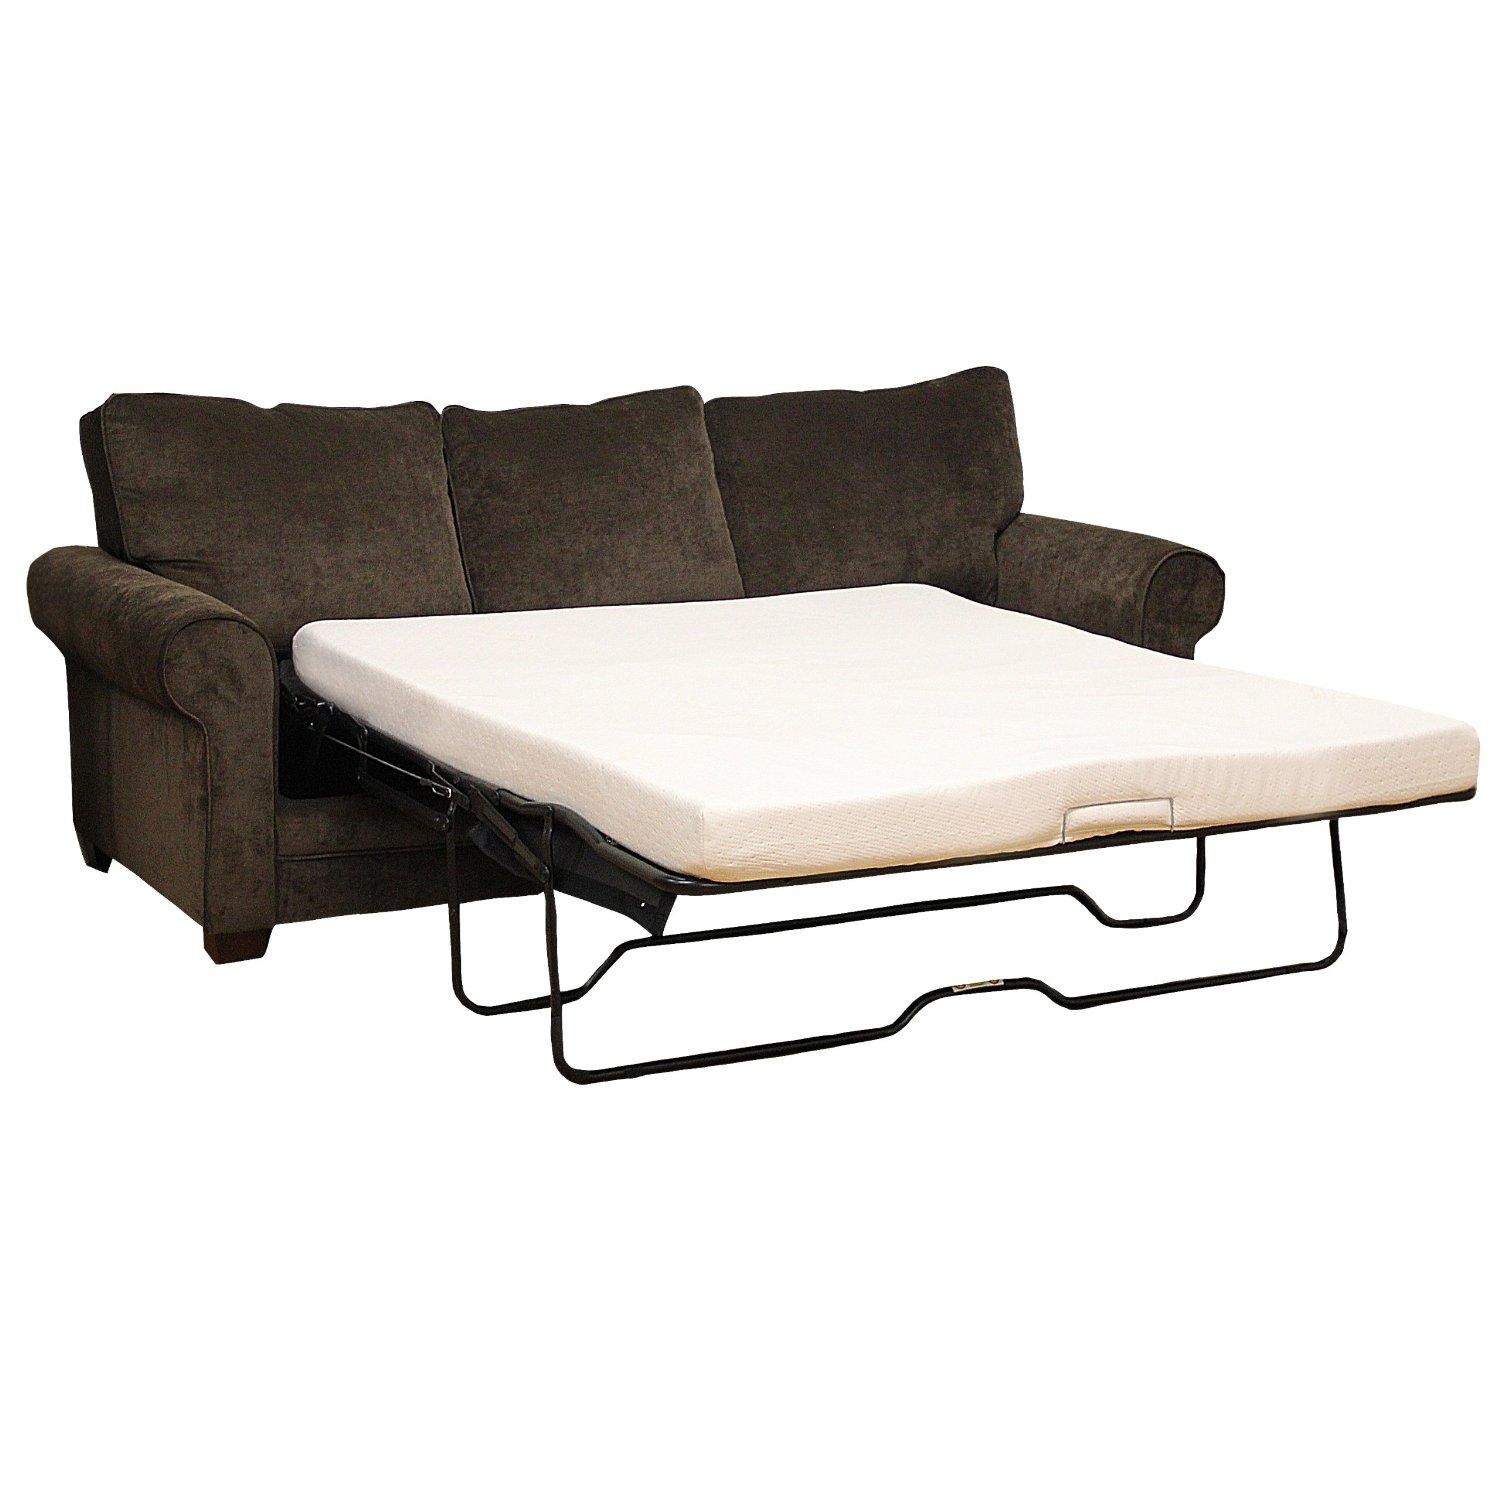 sofa bed boards support brown leather room ideas 20 best collection of beds with